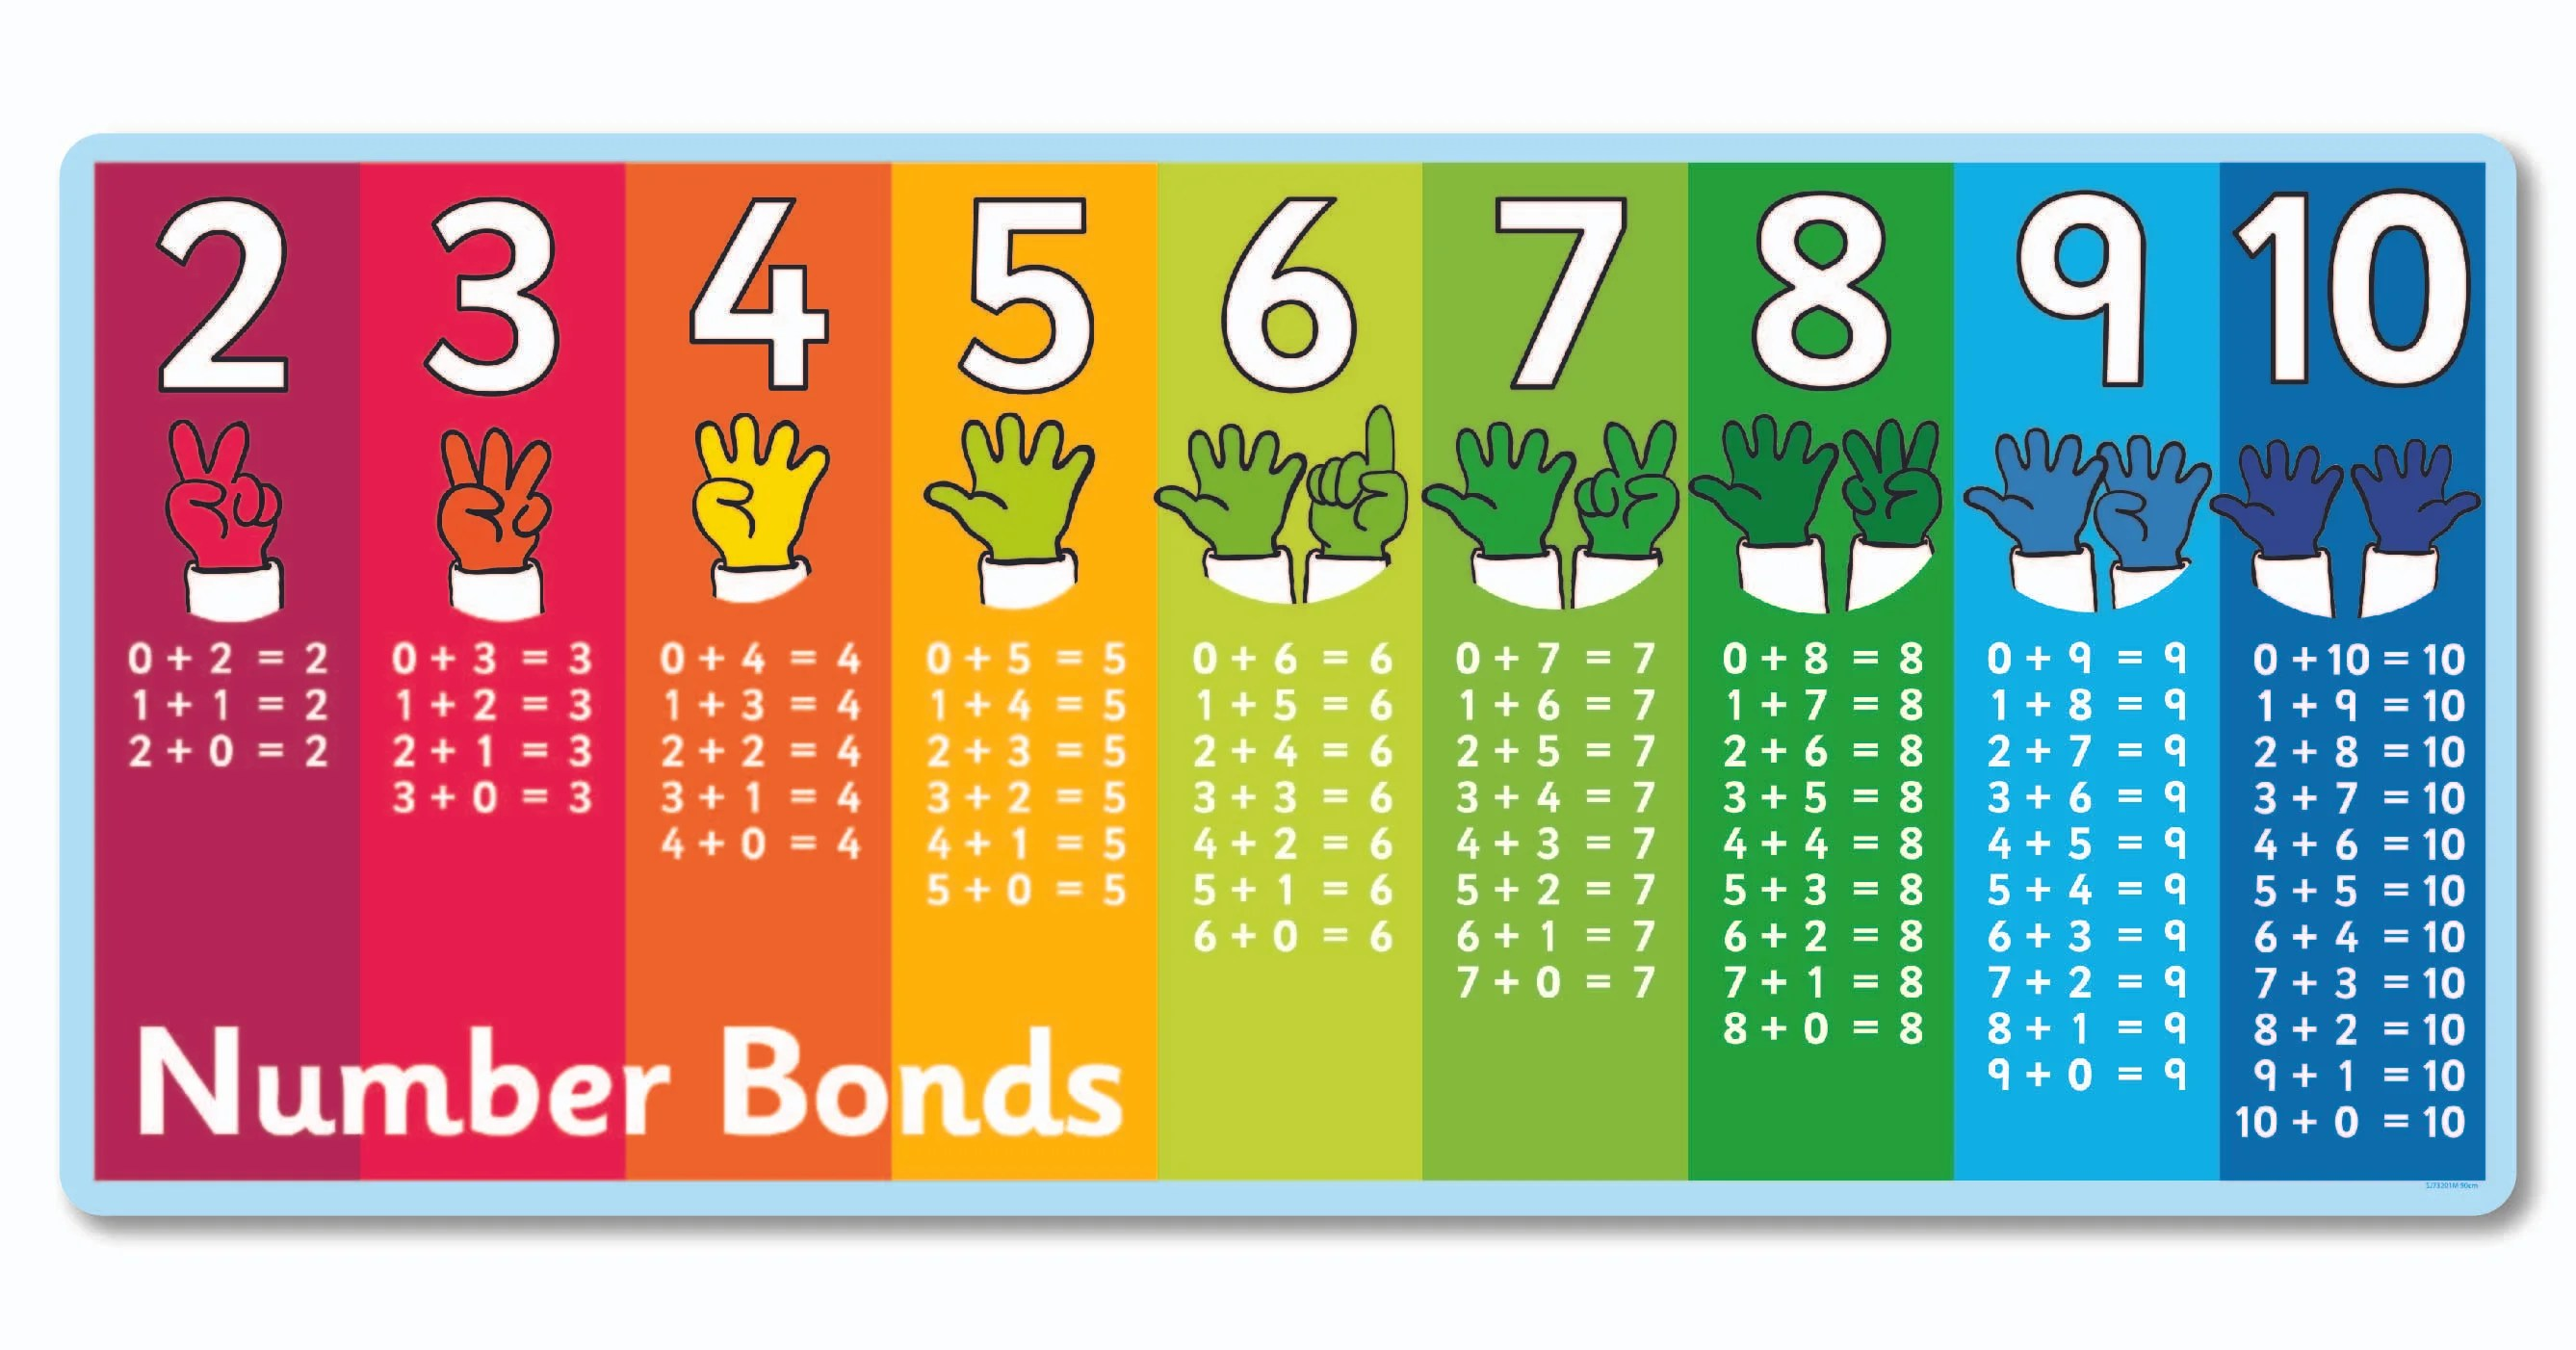 Math Worksheet Number Bonds To 10